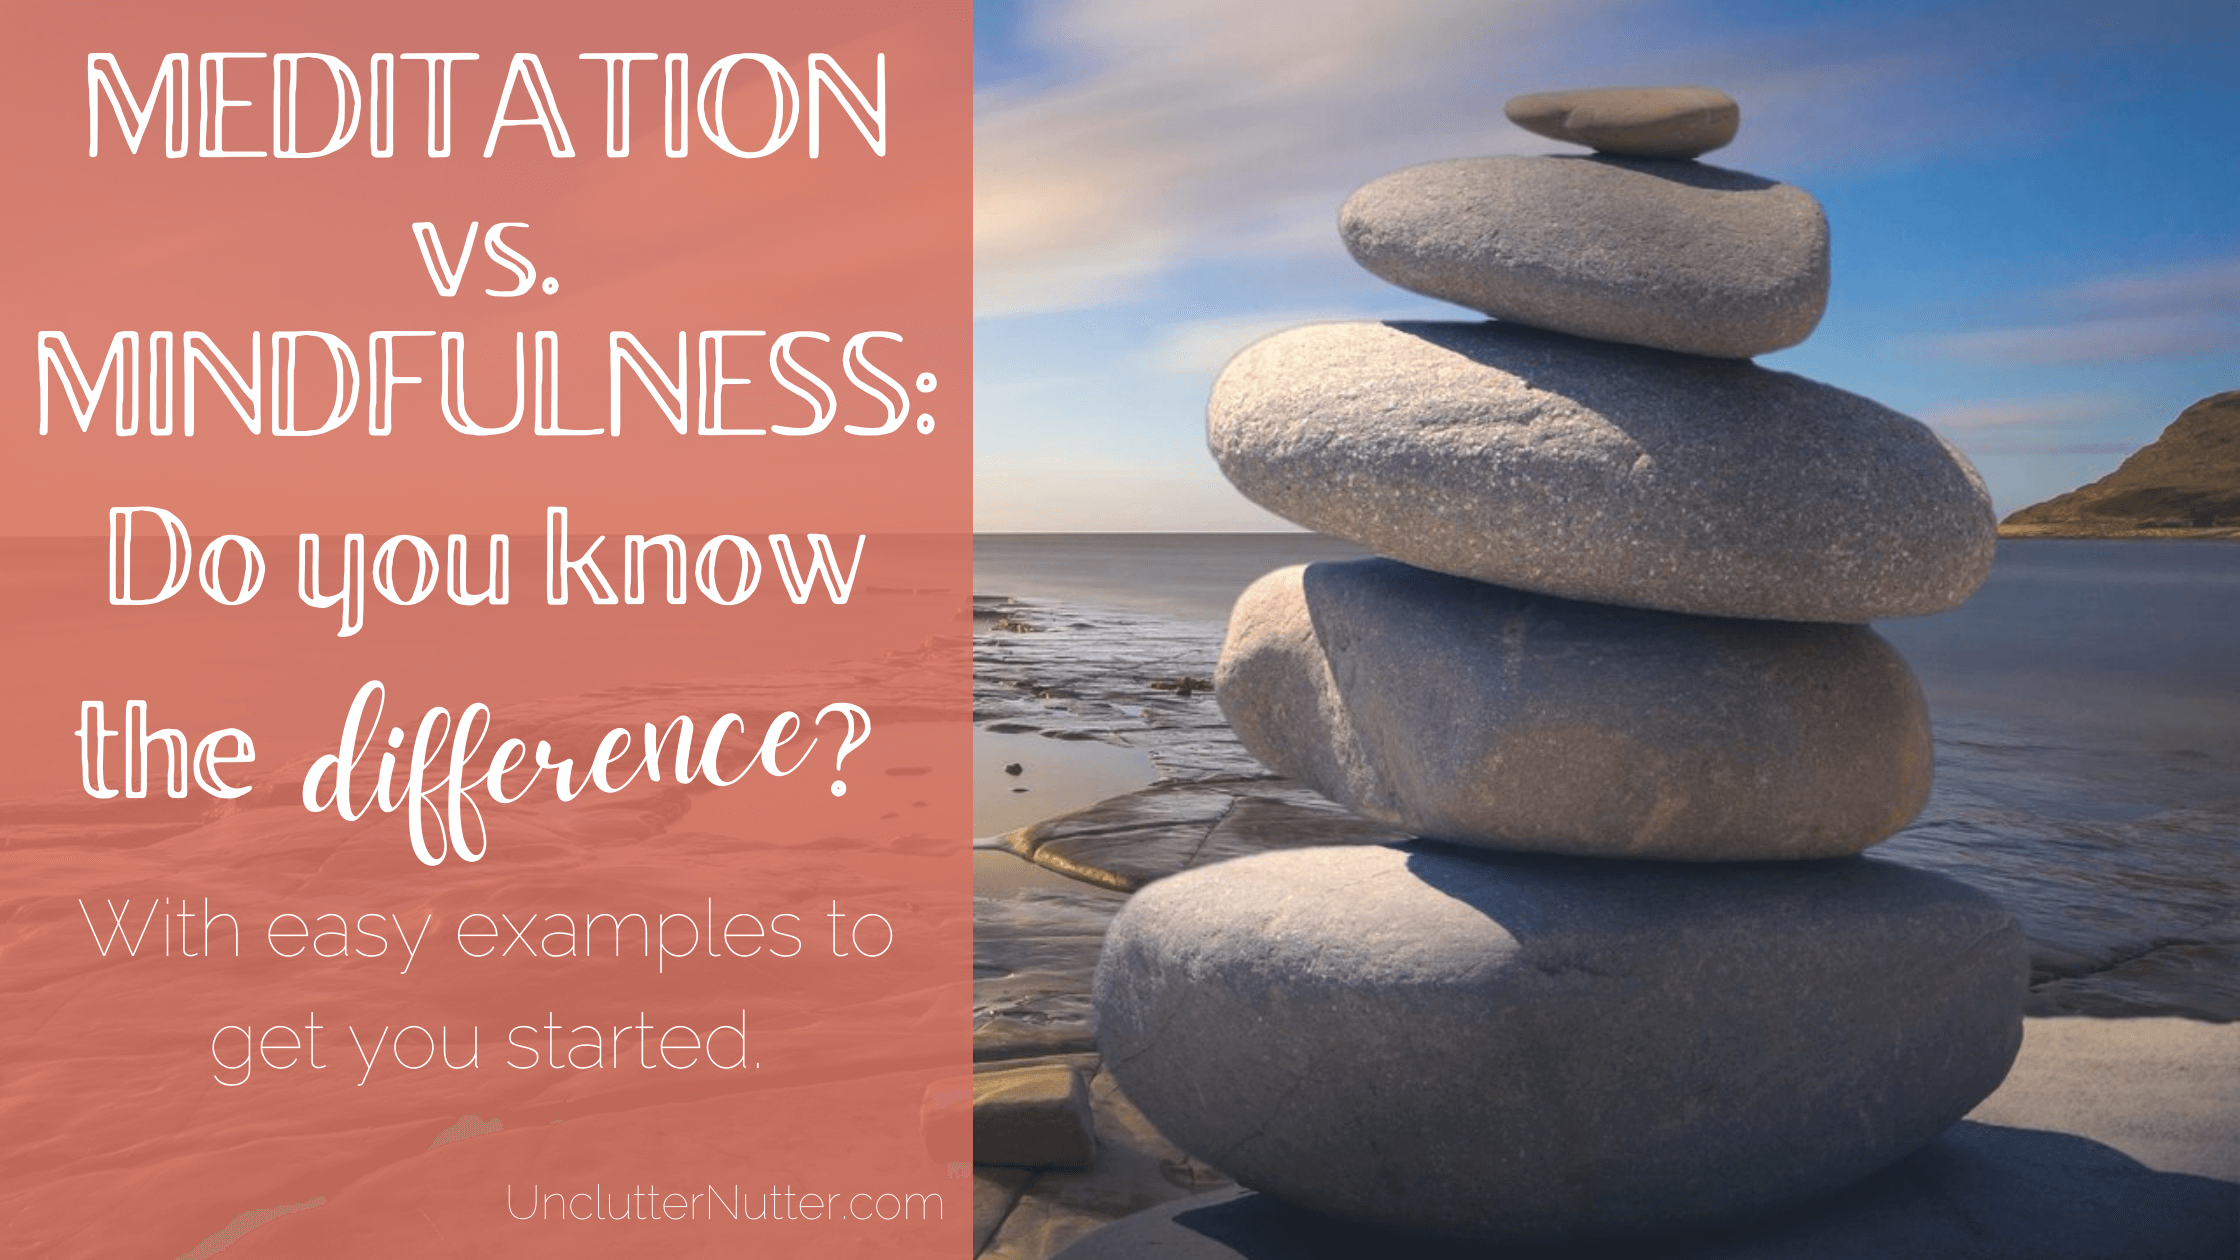 Banner with text of Meditation vs. mindfulness. Do you know the difference? with image of a pile of balanced stones by the sea